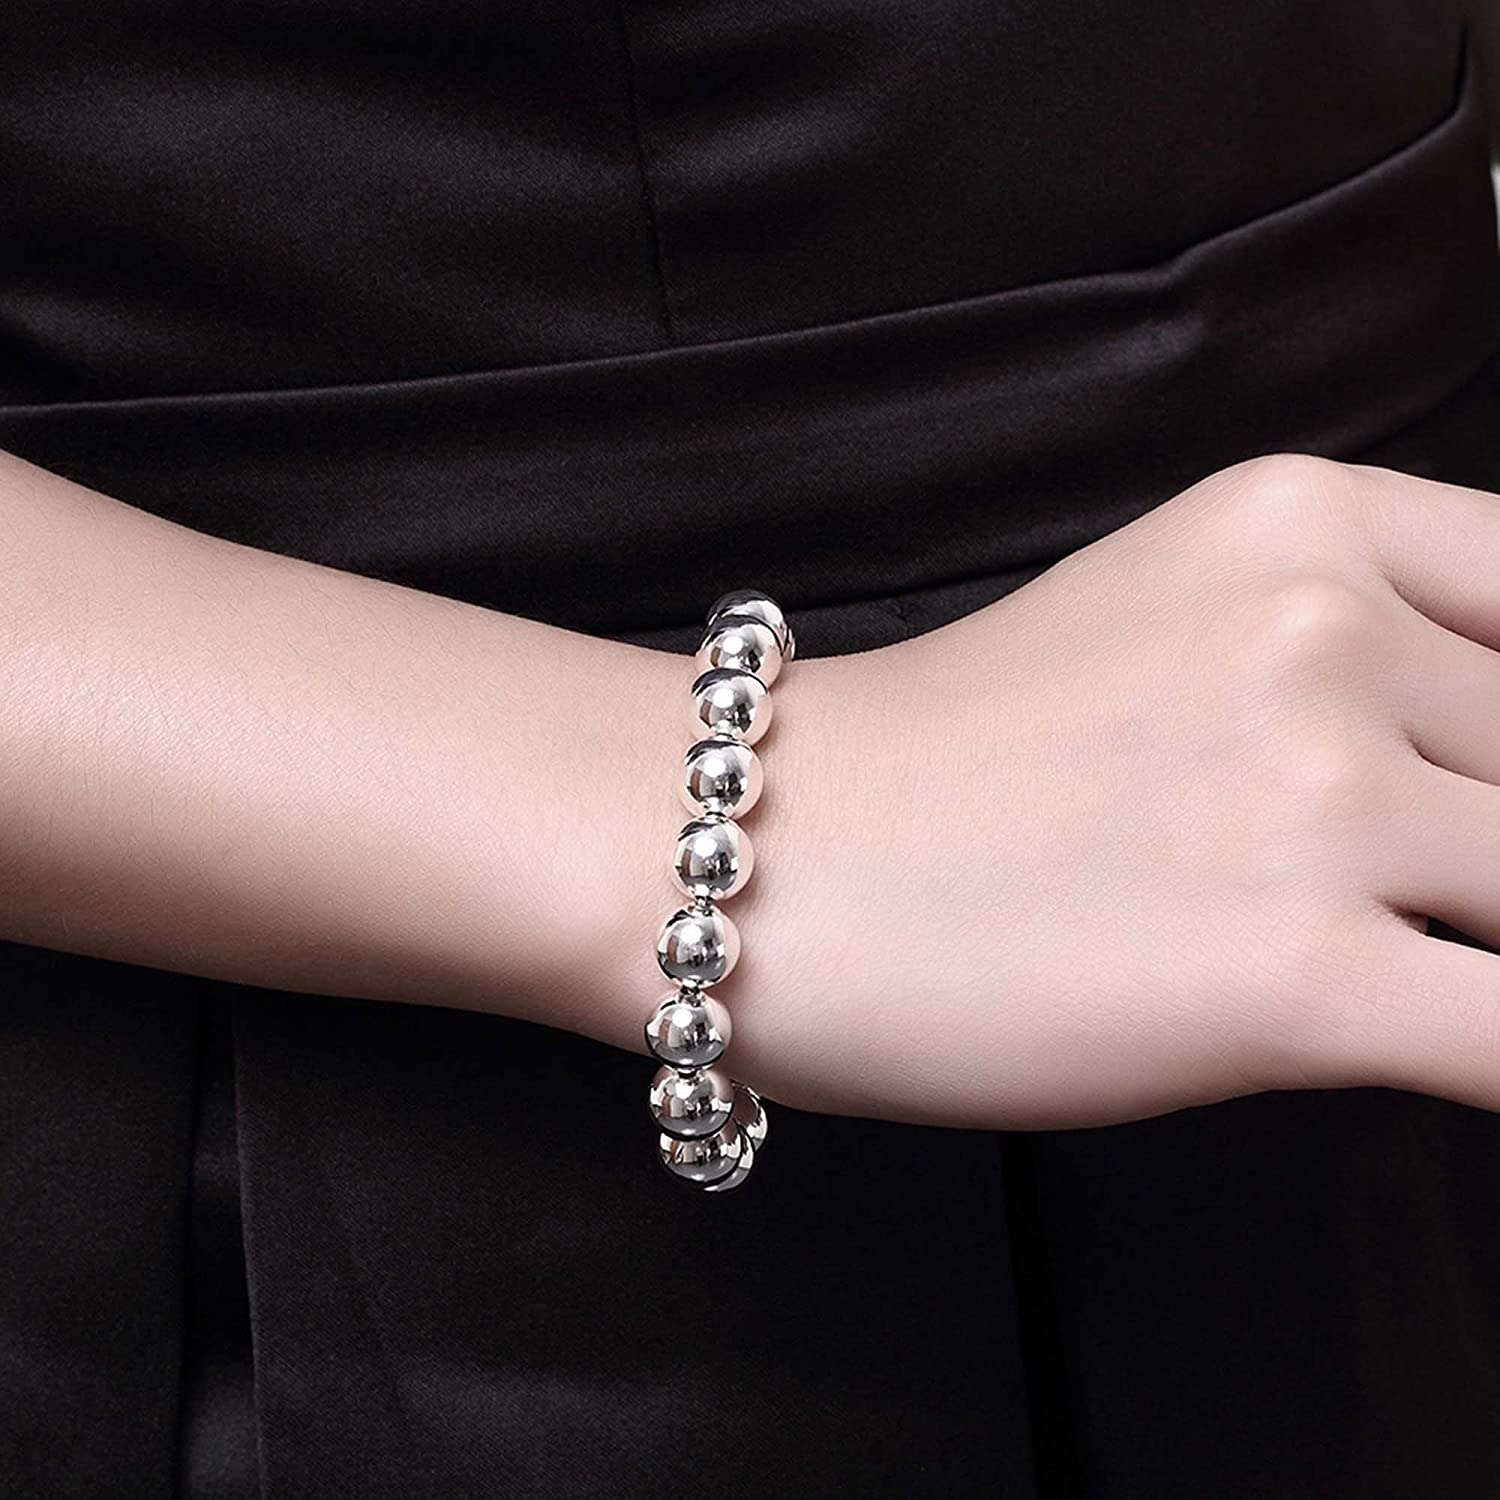 10mm PMANY 925 Sterling Silver Plated Round Beads Chain Bracelet Bangle